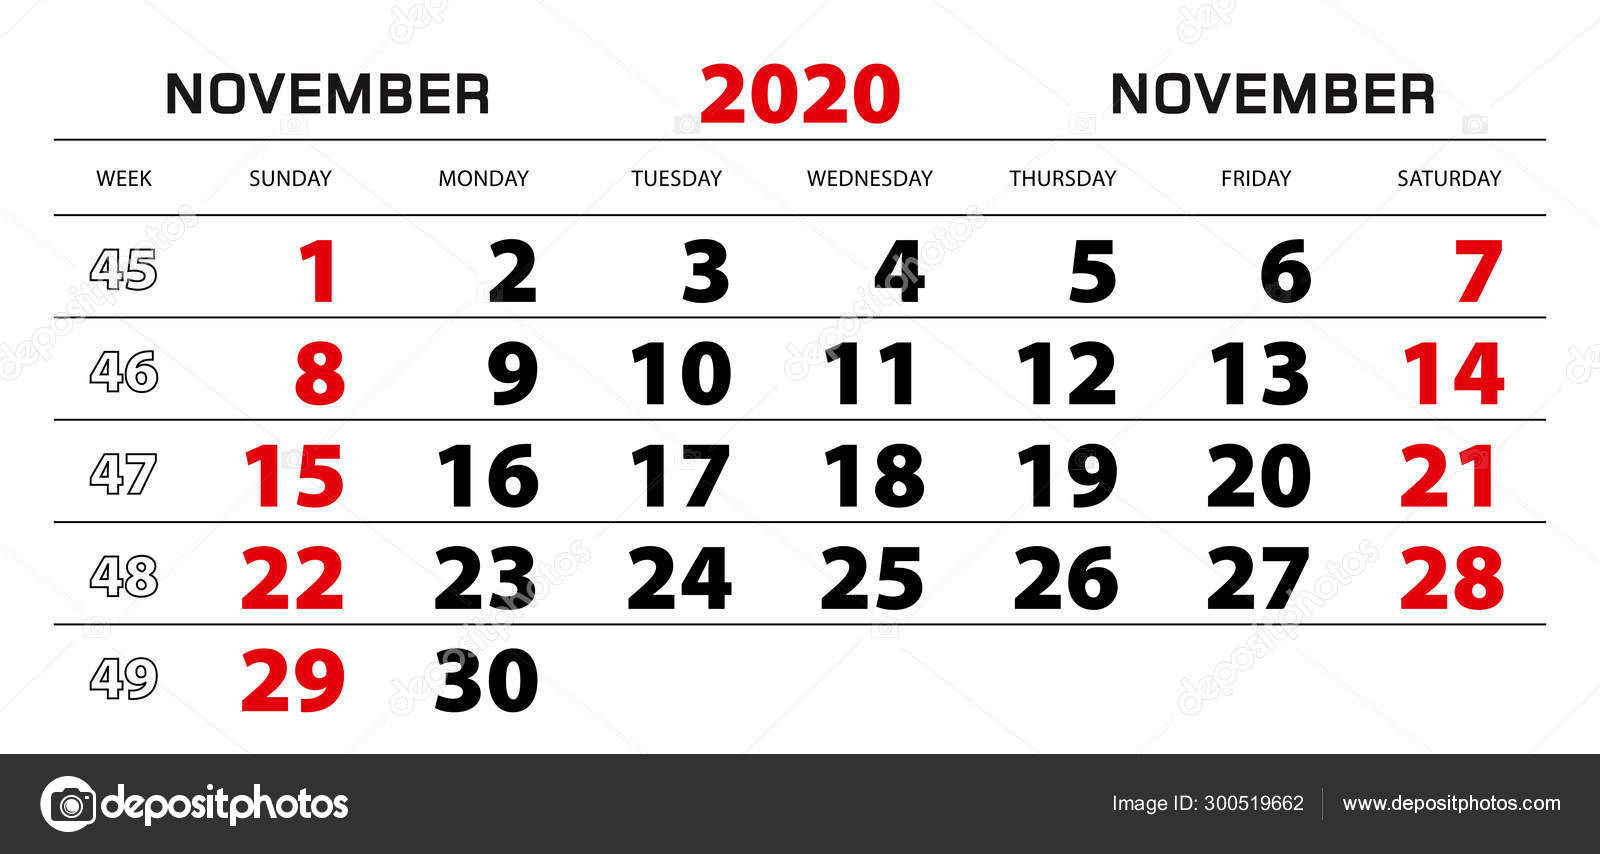 Wall Calendar 2020 For November, Week Start From Sunday